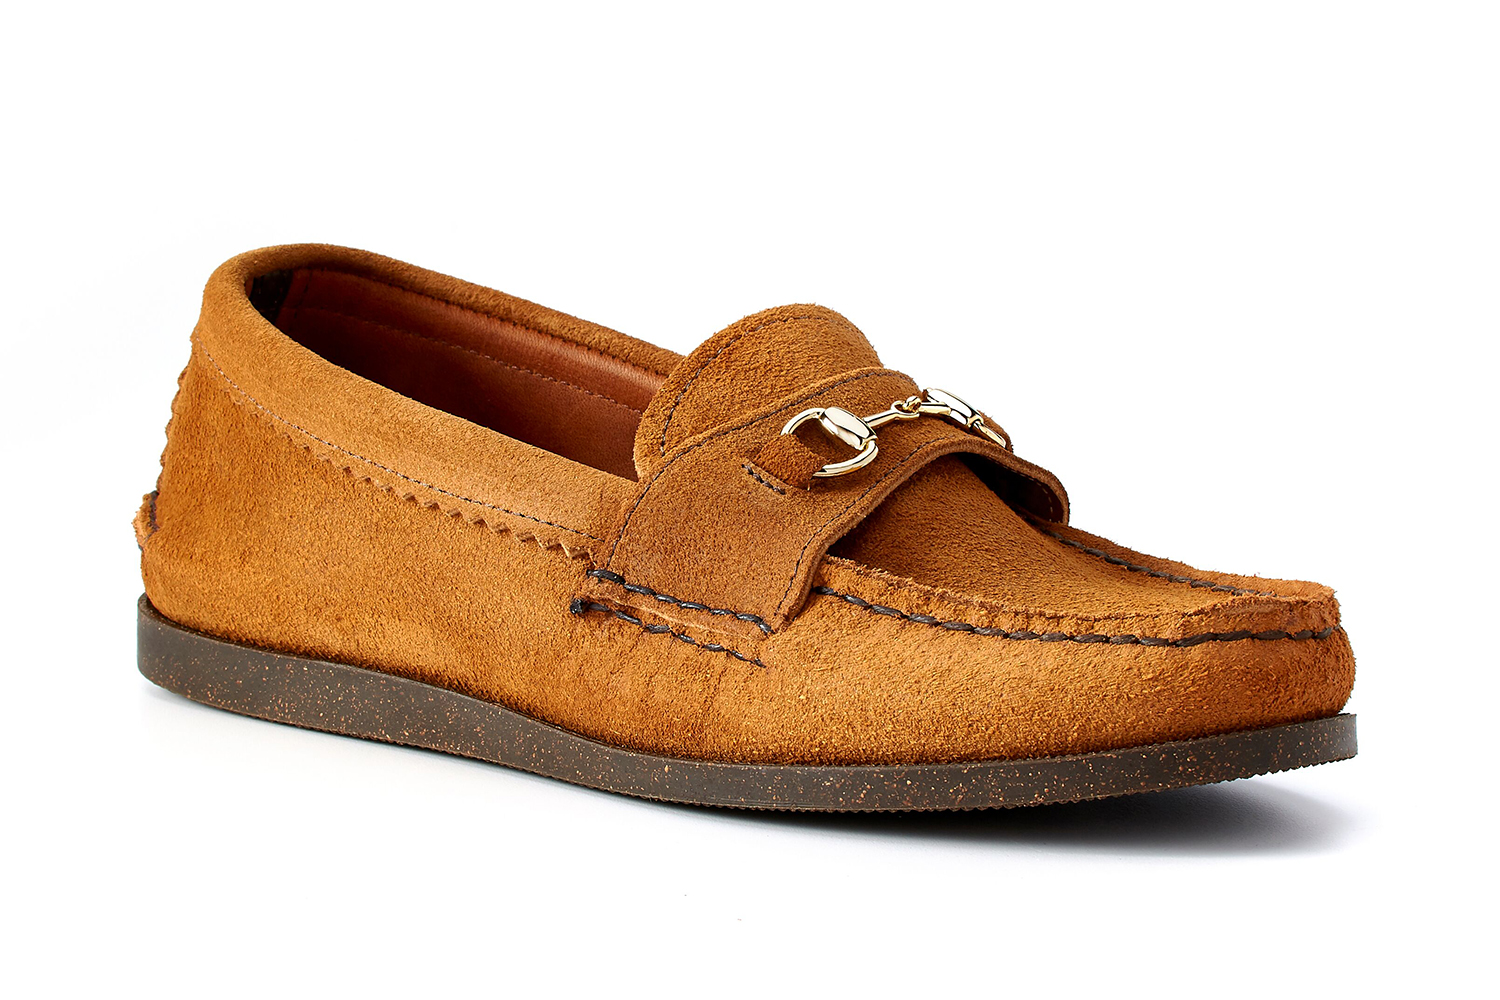 Yuketen Loafer